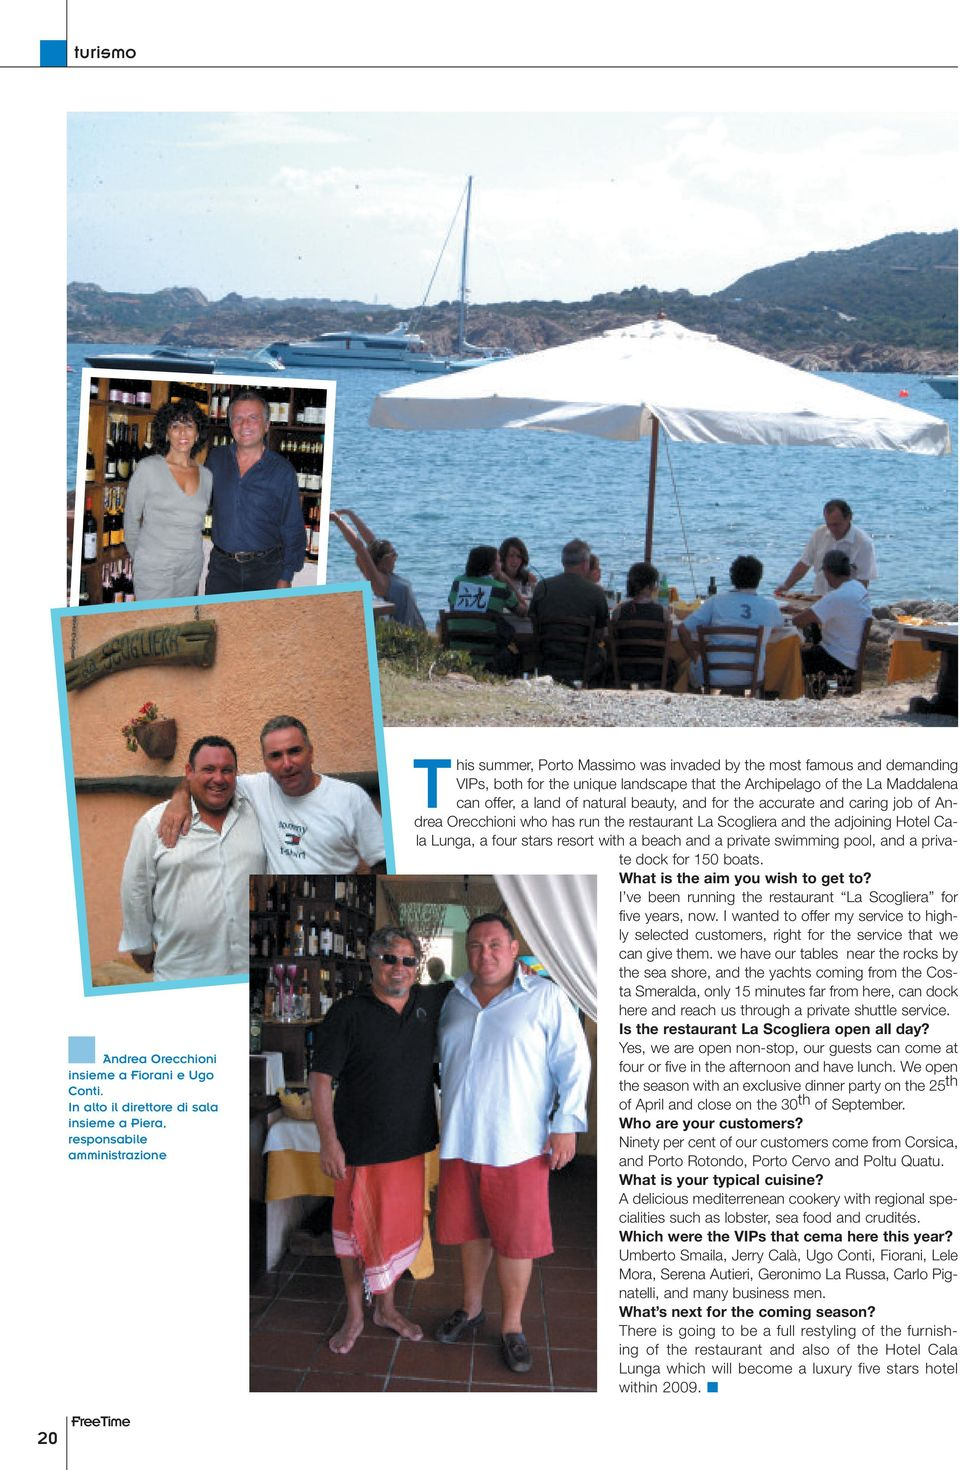 Archipelago of the La Maddalena can offer, a land of natural beauty, and for the accurate and caring job of Andrea Orecchioni who has run the restaurant La Scogliera and the adjoining Hotel Cala